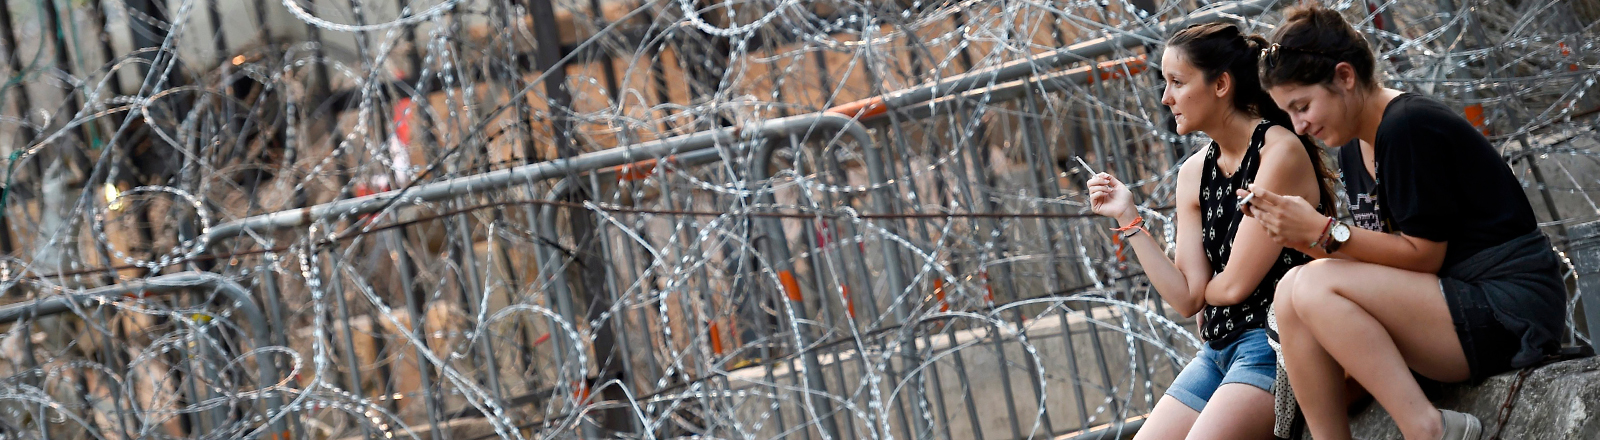 ebanese people smoke cigarettes in front barbed wire blocking the entrance to the Grand Serail, the office of the Lebanese Prime Minister, Beirut, Lebanon, 02 September 2015. Lebanese people's frustration with the Government's internecine conflicts which have paralyzed the political process has manifested in days of protests sparked by mounting garbage piled on streets, but becoming a criticism of the political class in general, seen as corrupt, cronyist and self serving